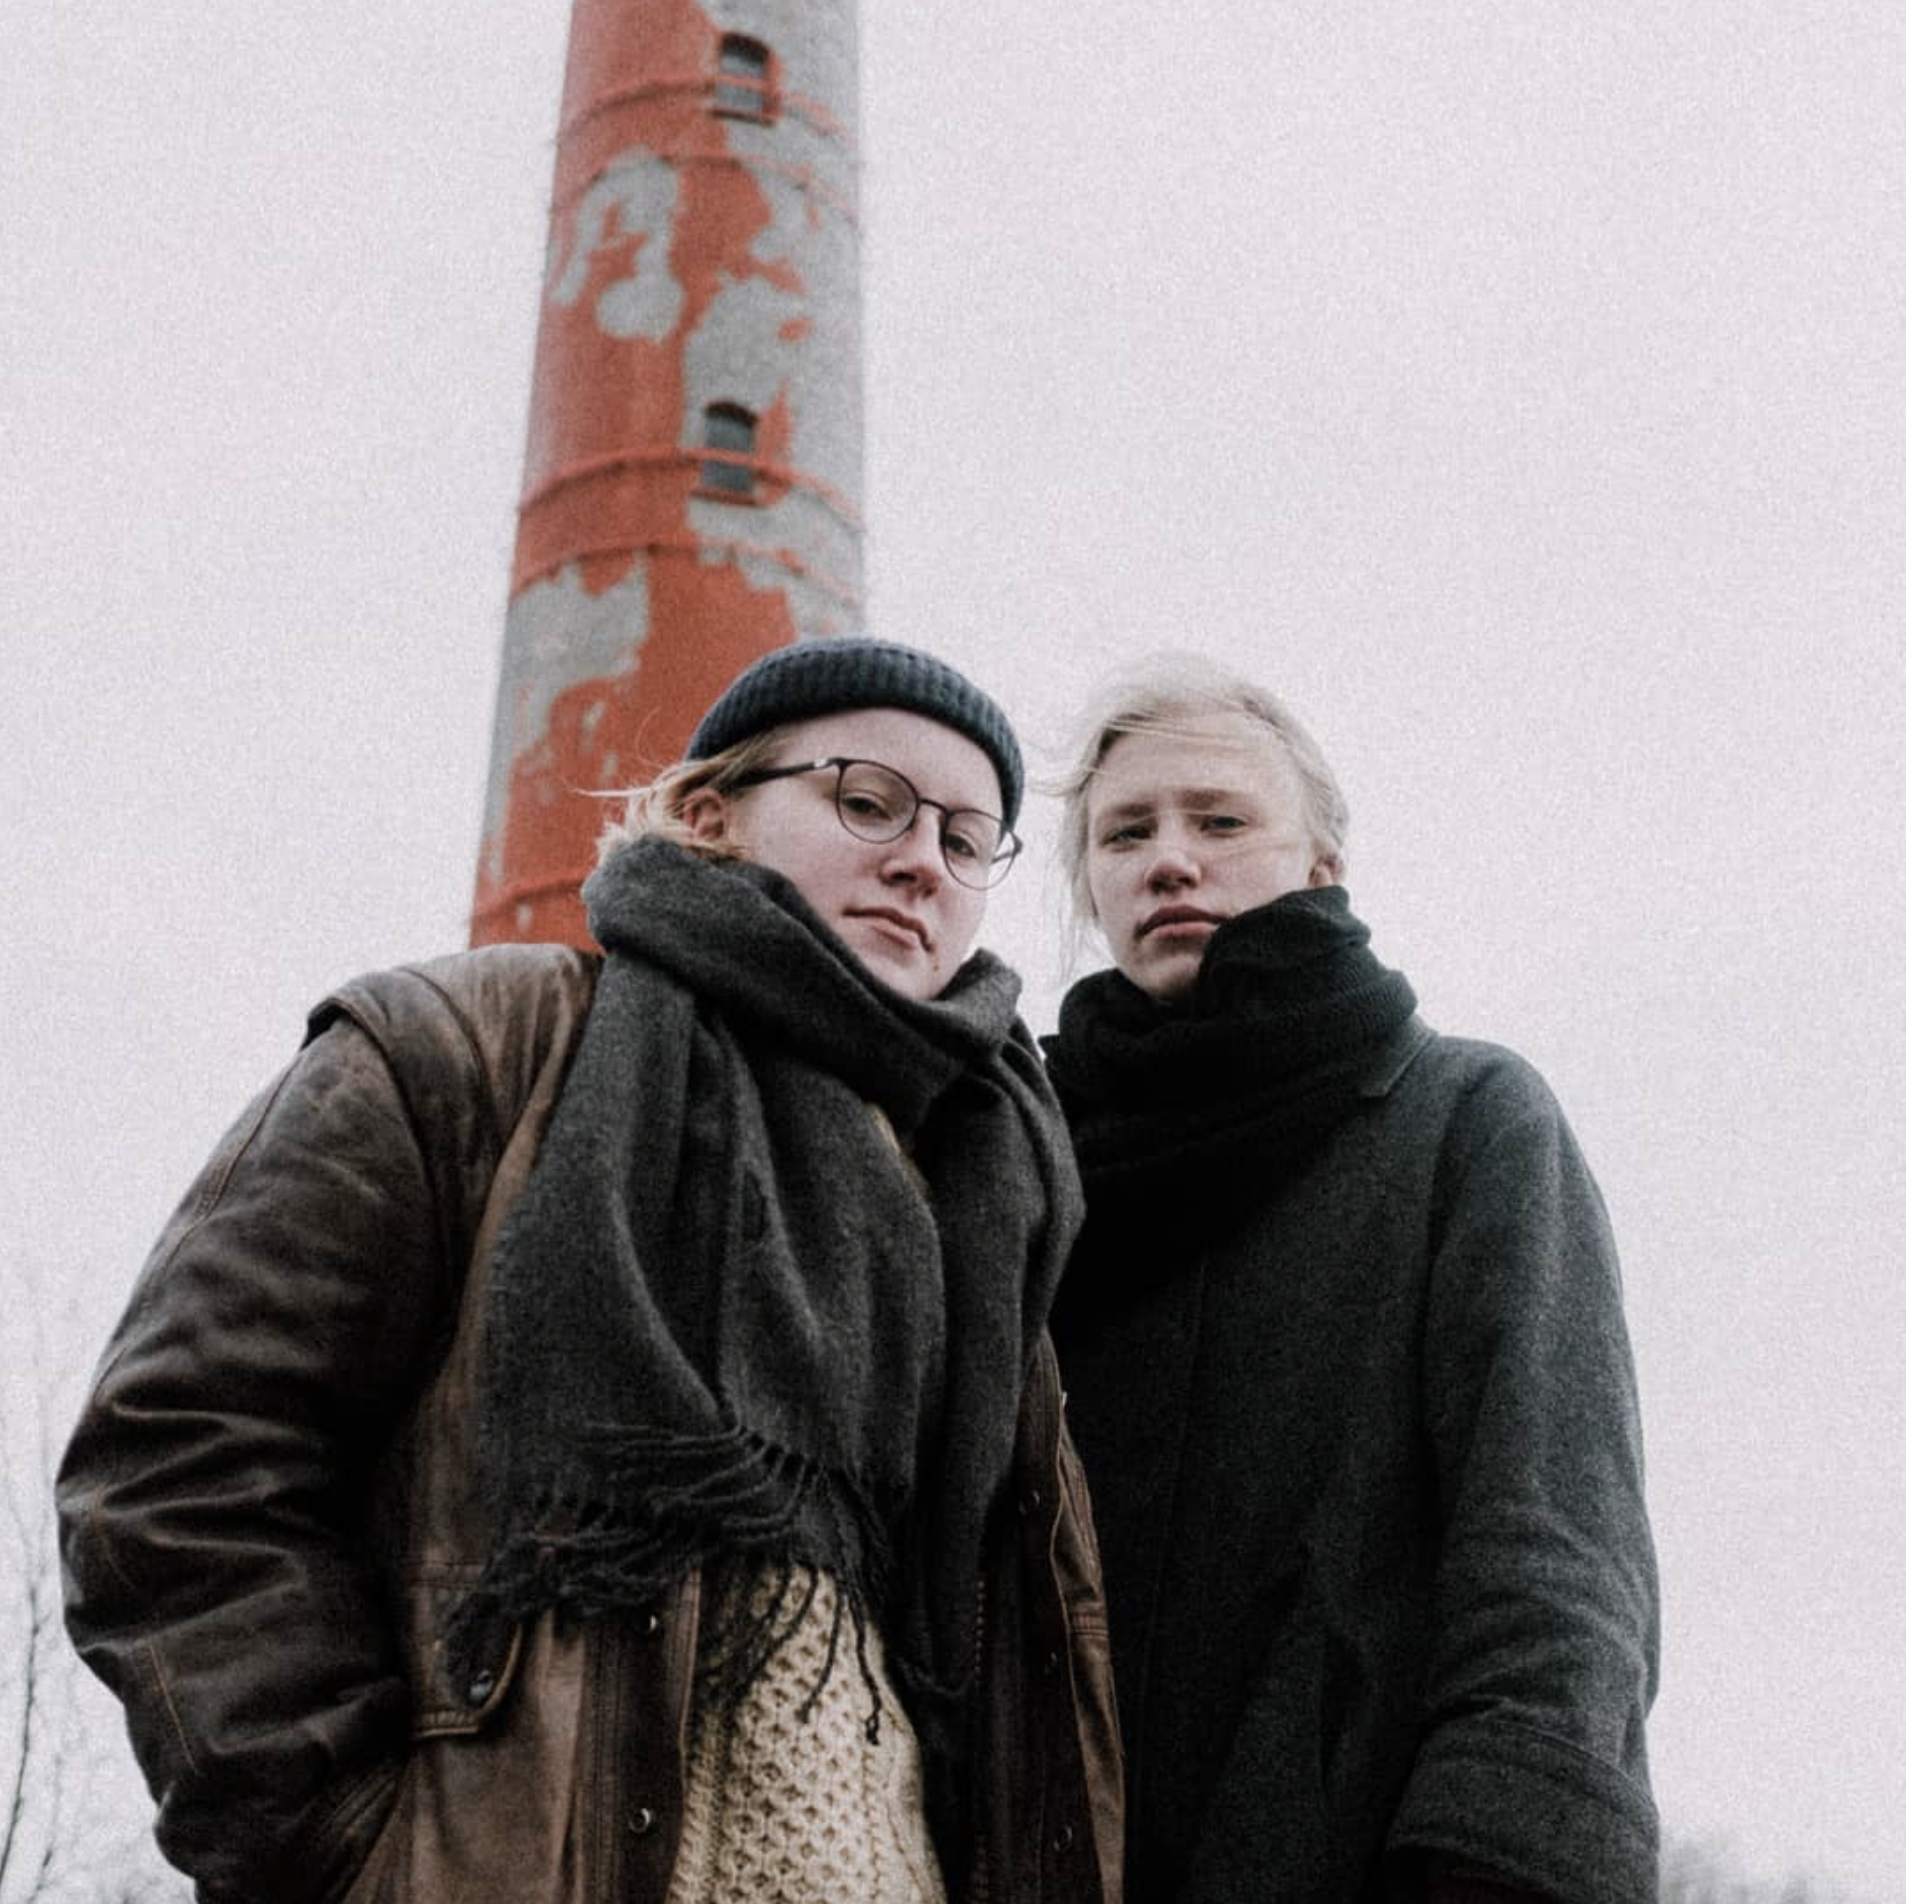 DUO RUUT - HUIKED (2019) - ESTONIA